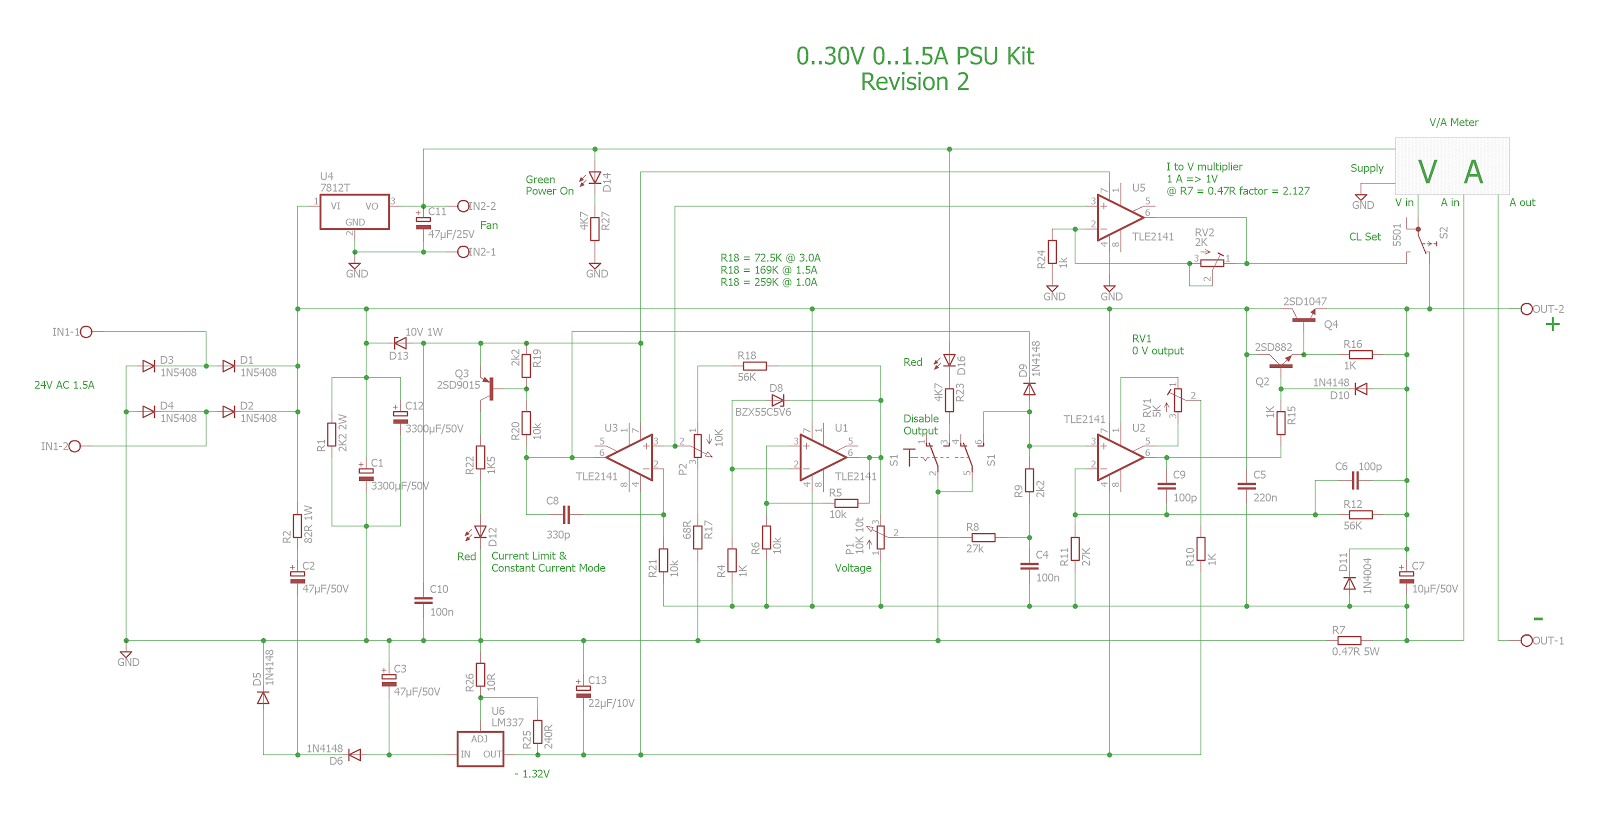 Pauls Diy Electronics Blog Tuning A 030v Dc 03a Psu Kit 12v To 9v 2a Step Down Converter Using Ic 741 And 2n3055 Here Is The Original Parts List As Supplied With But My Changes Additions Listed Well